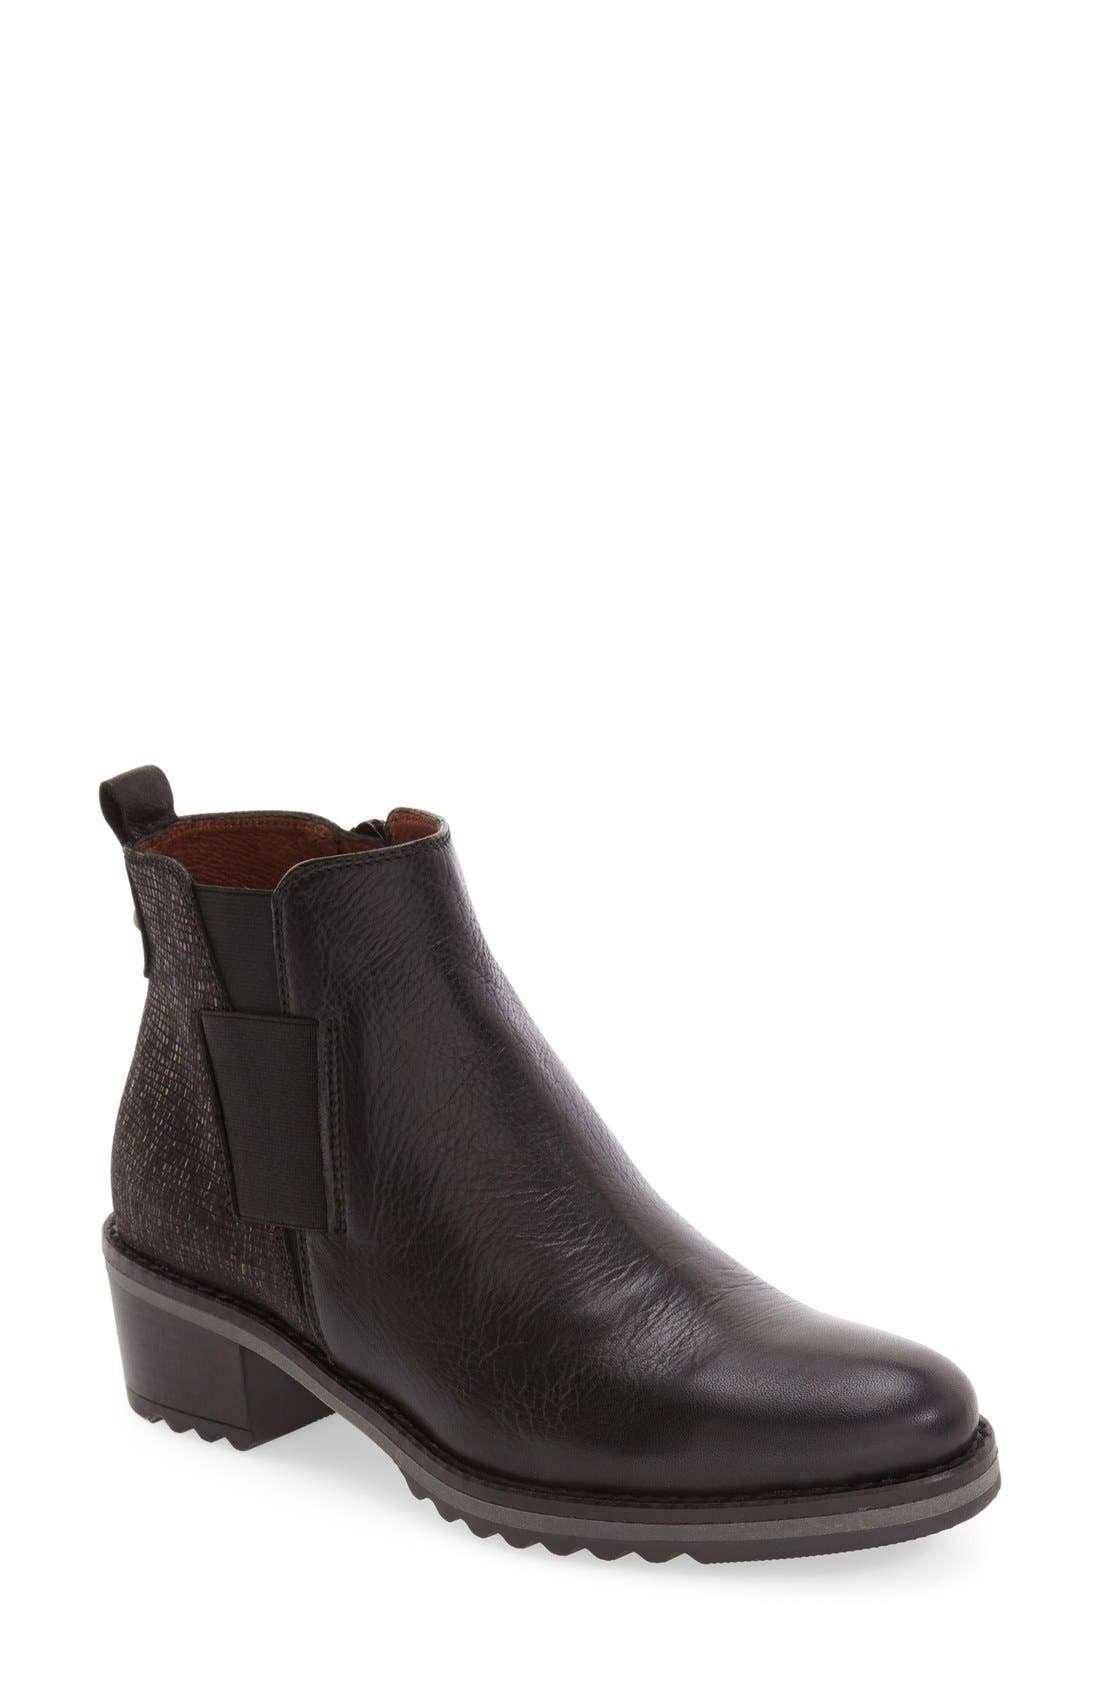 Hispanitas 'Lourdes' Chelsea Boot (Women)